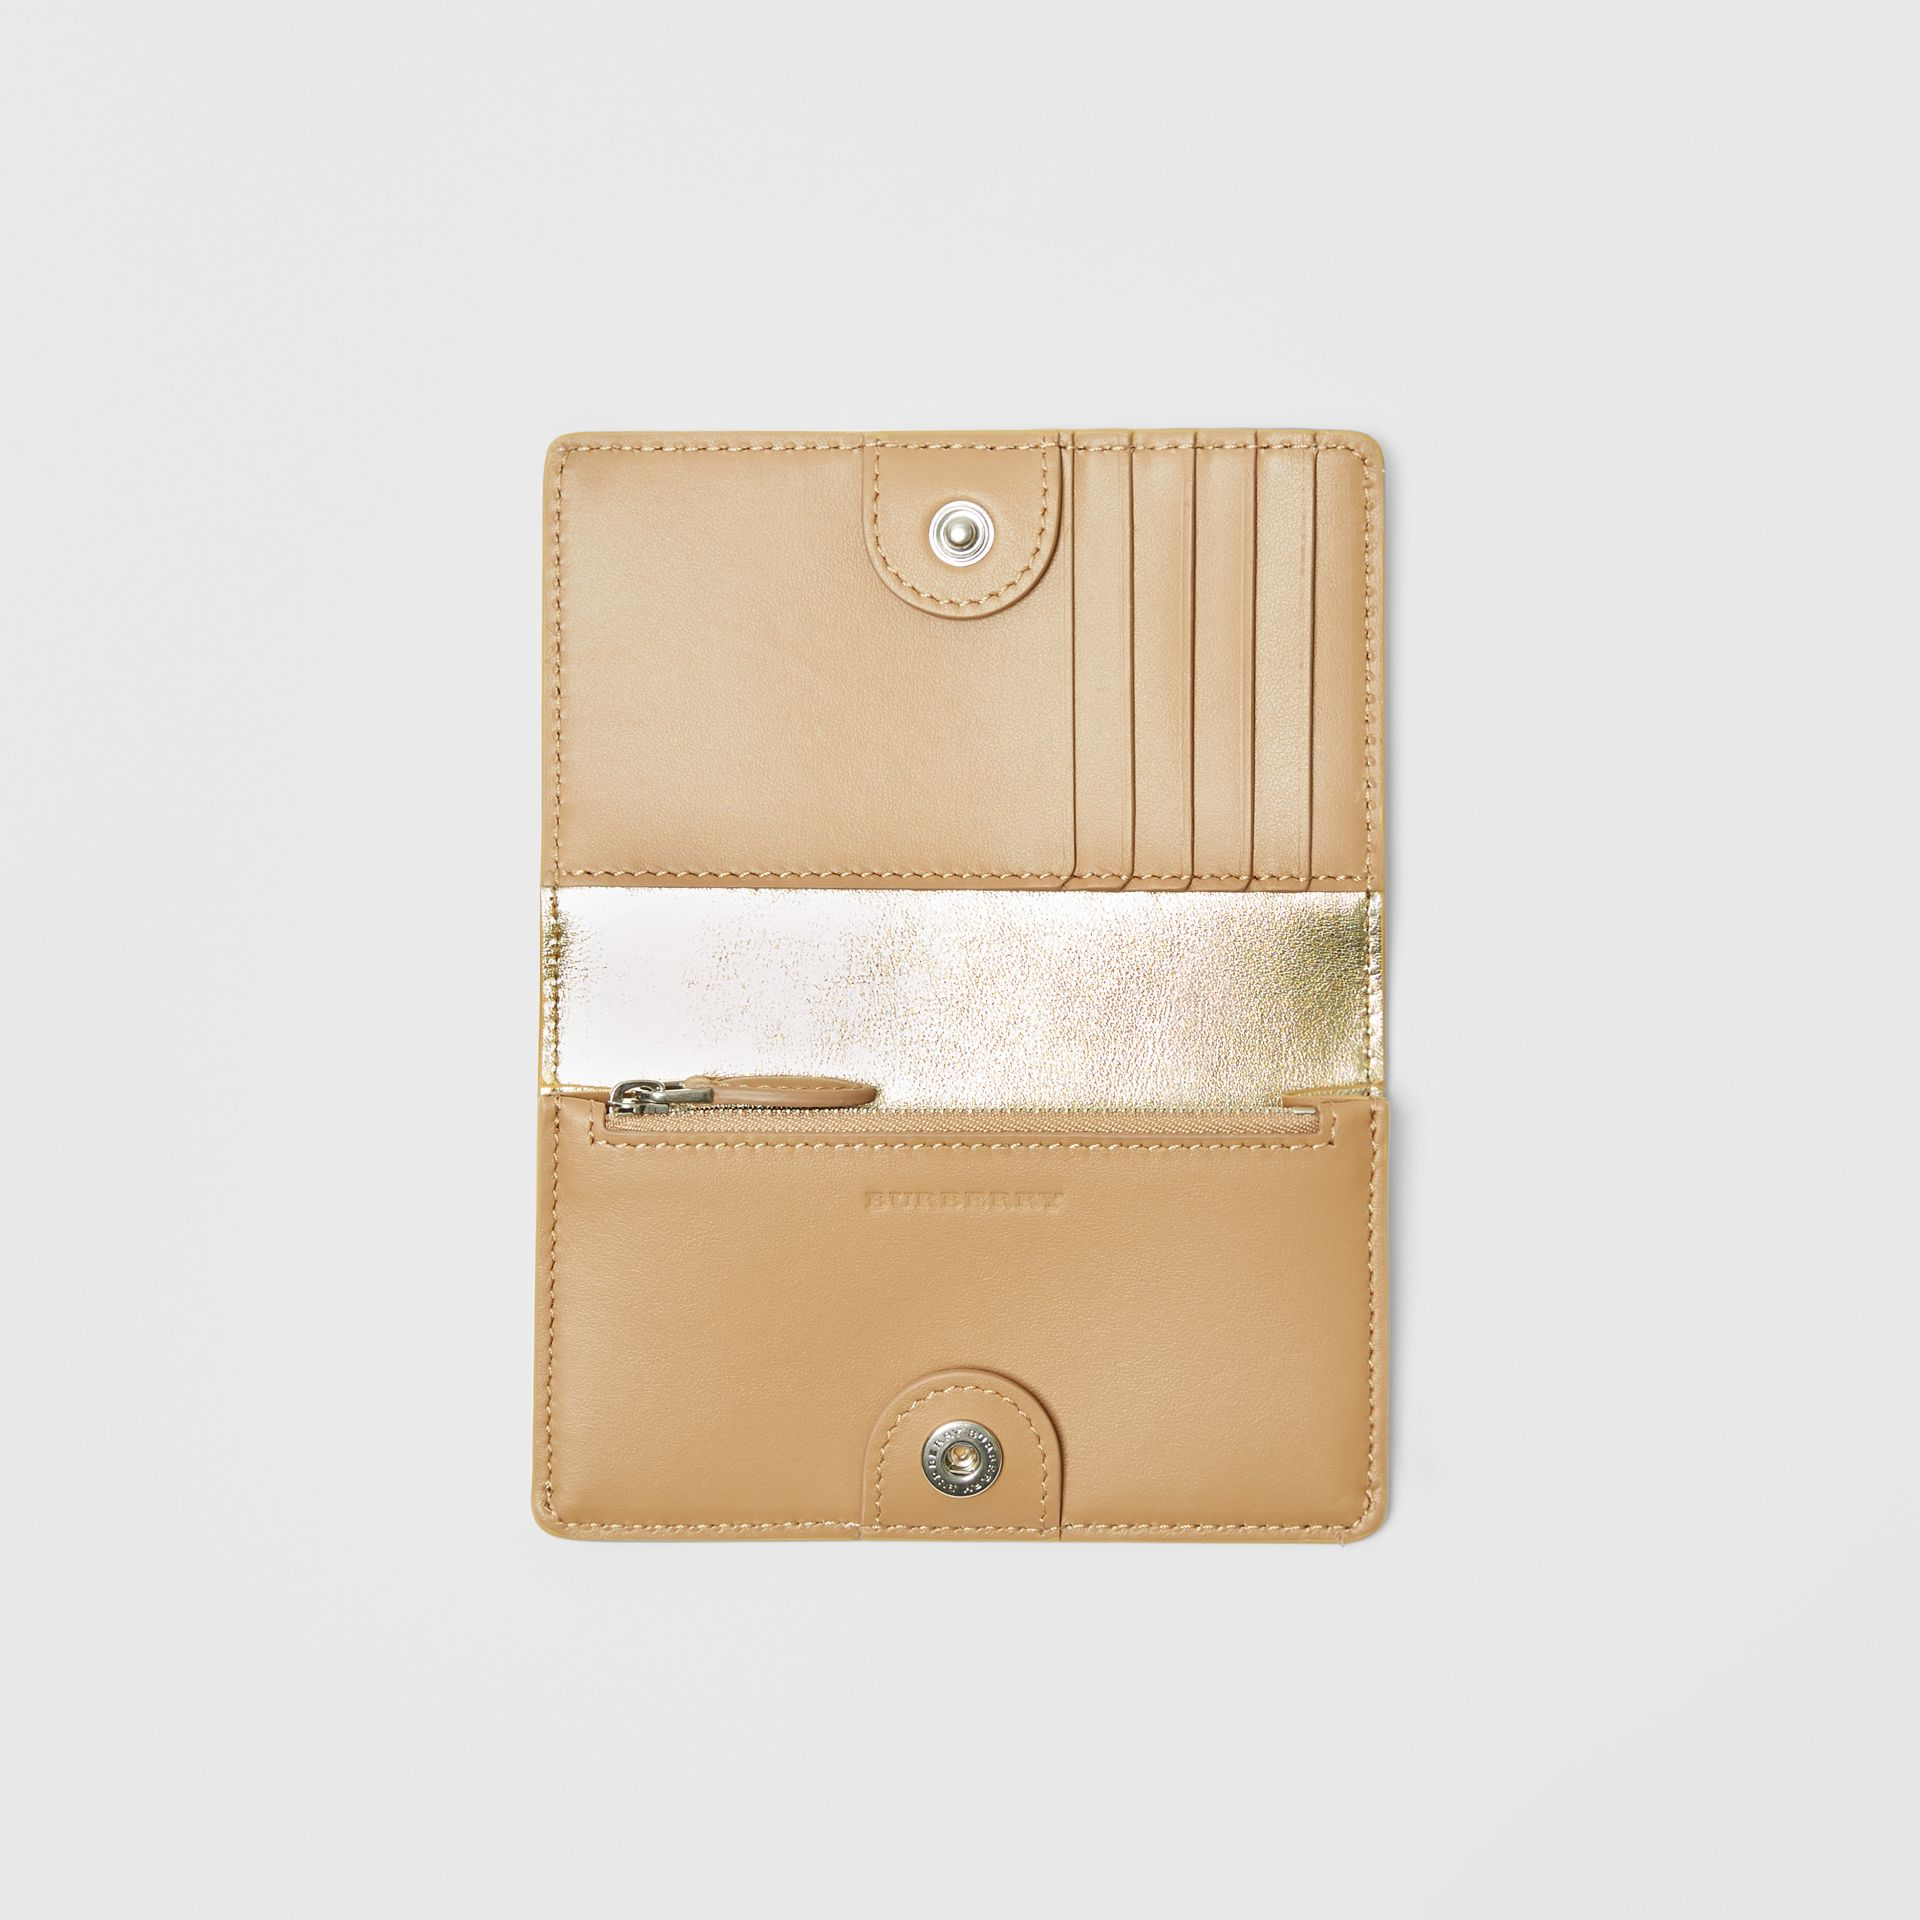 Small Embossed Crest Metallic Leather Wallet in Gold - Women | Burberry Singapore - gallery image 2